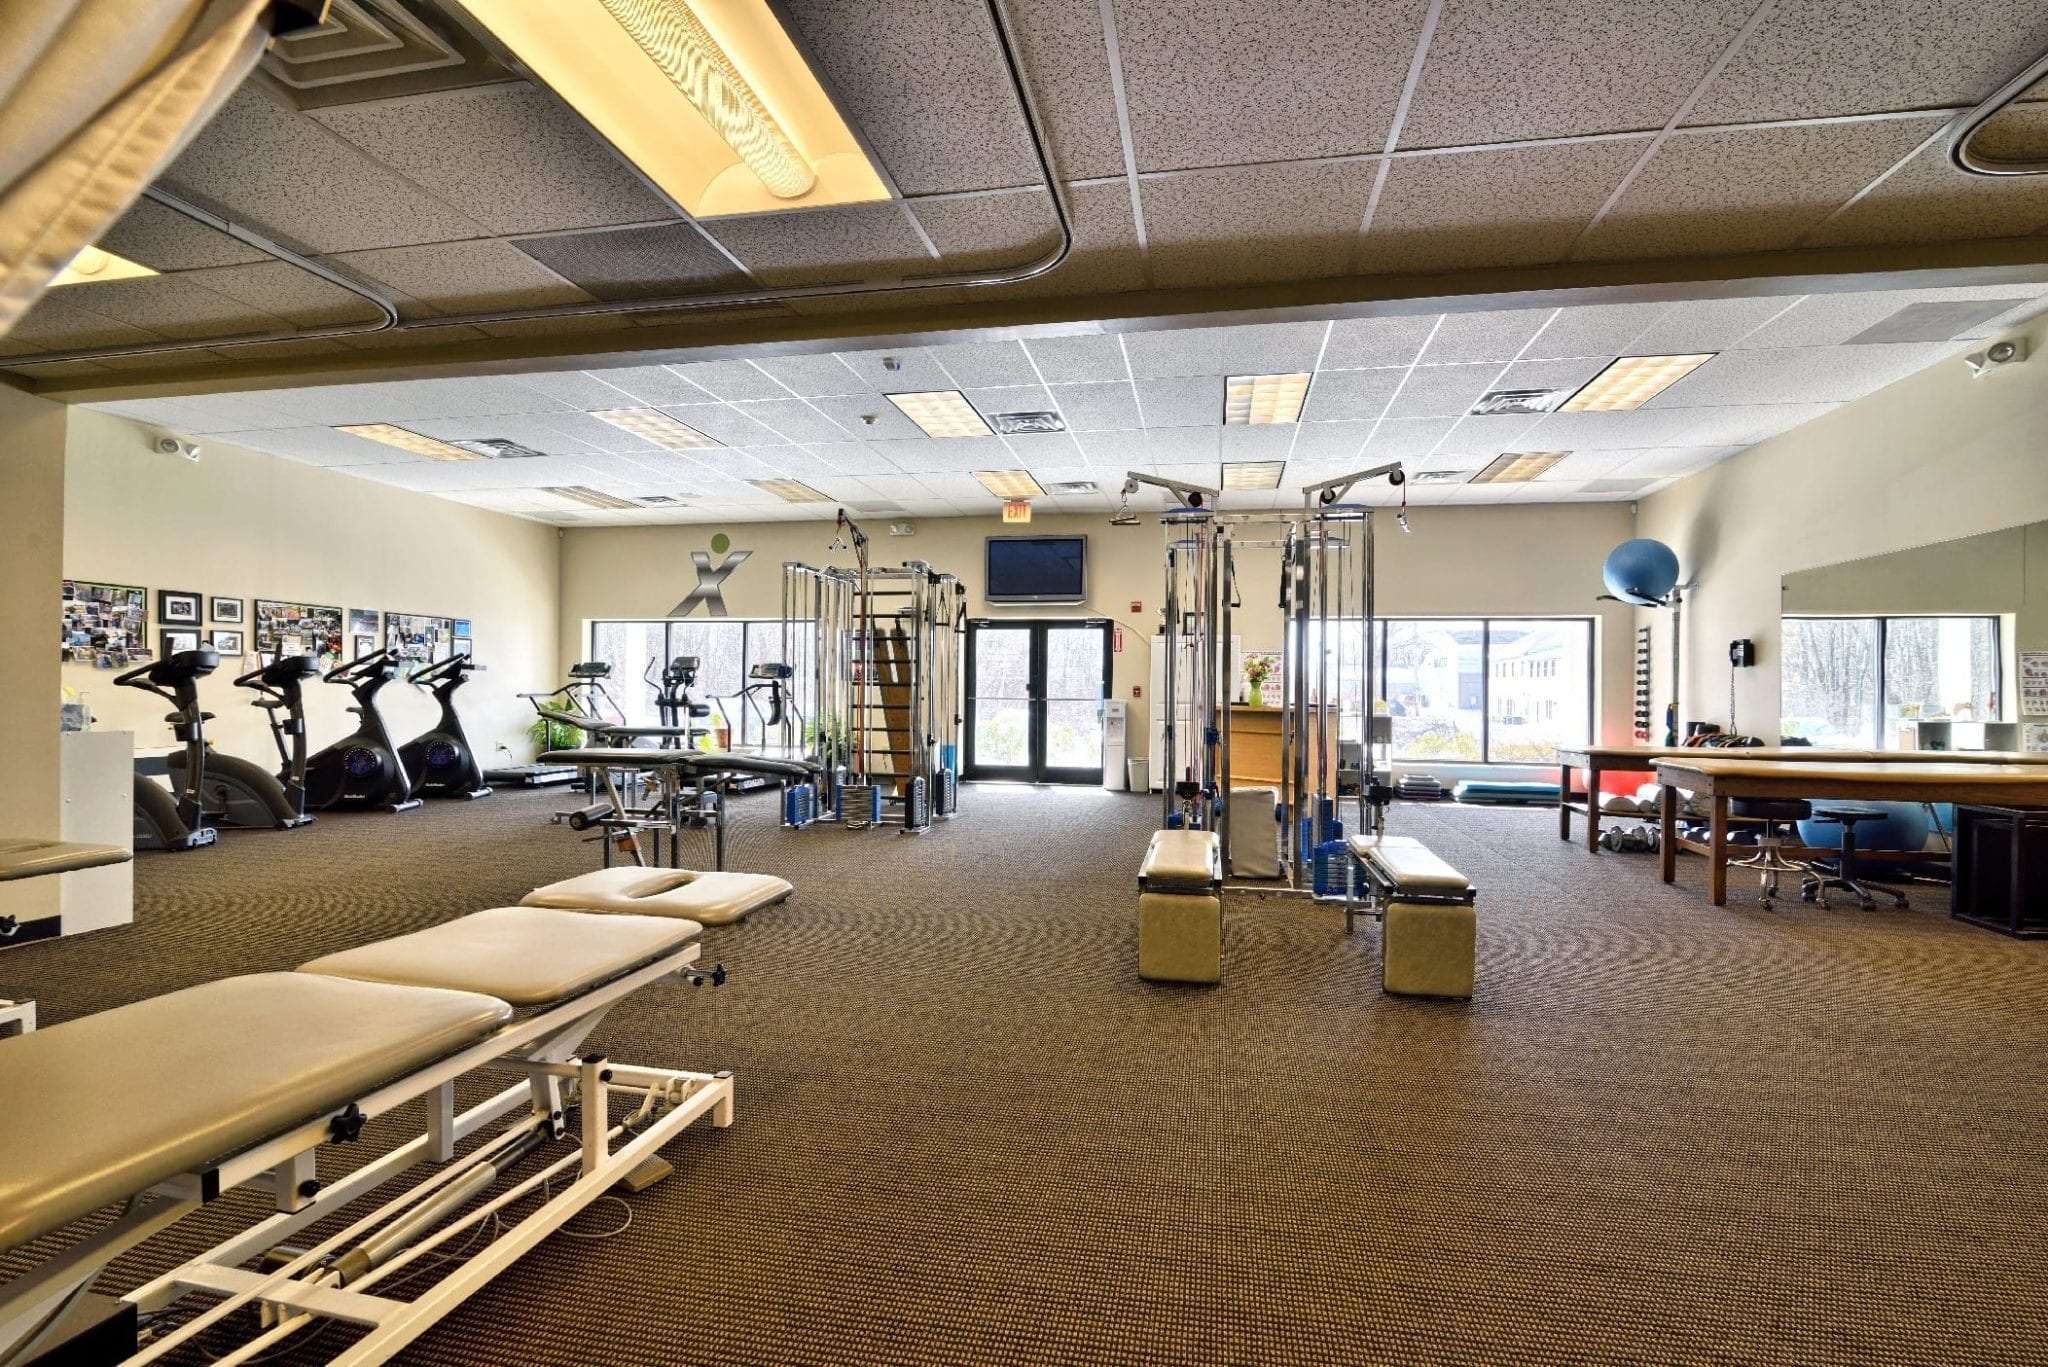 Here is an image of bikes, stretch beds, and weights at our physical therapy clinic in Stratham, New Hampshire.